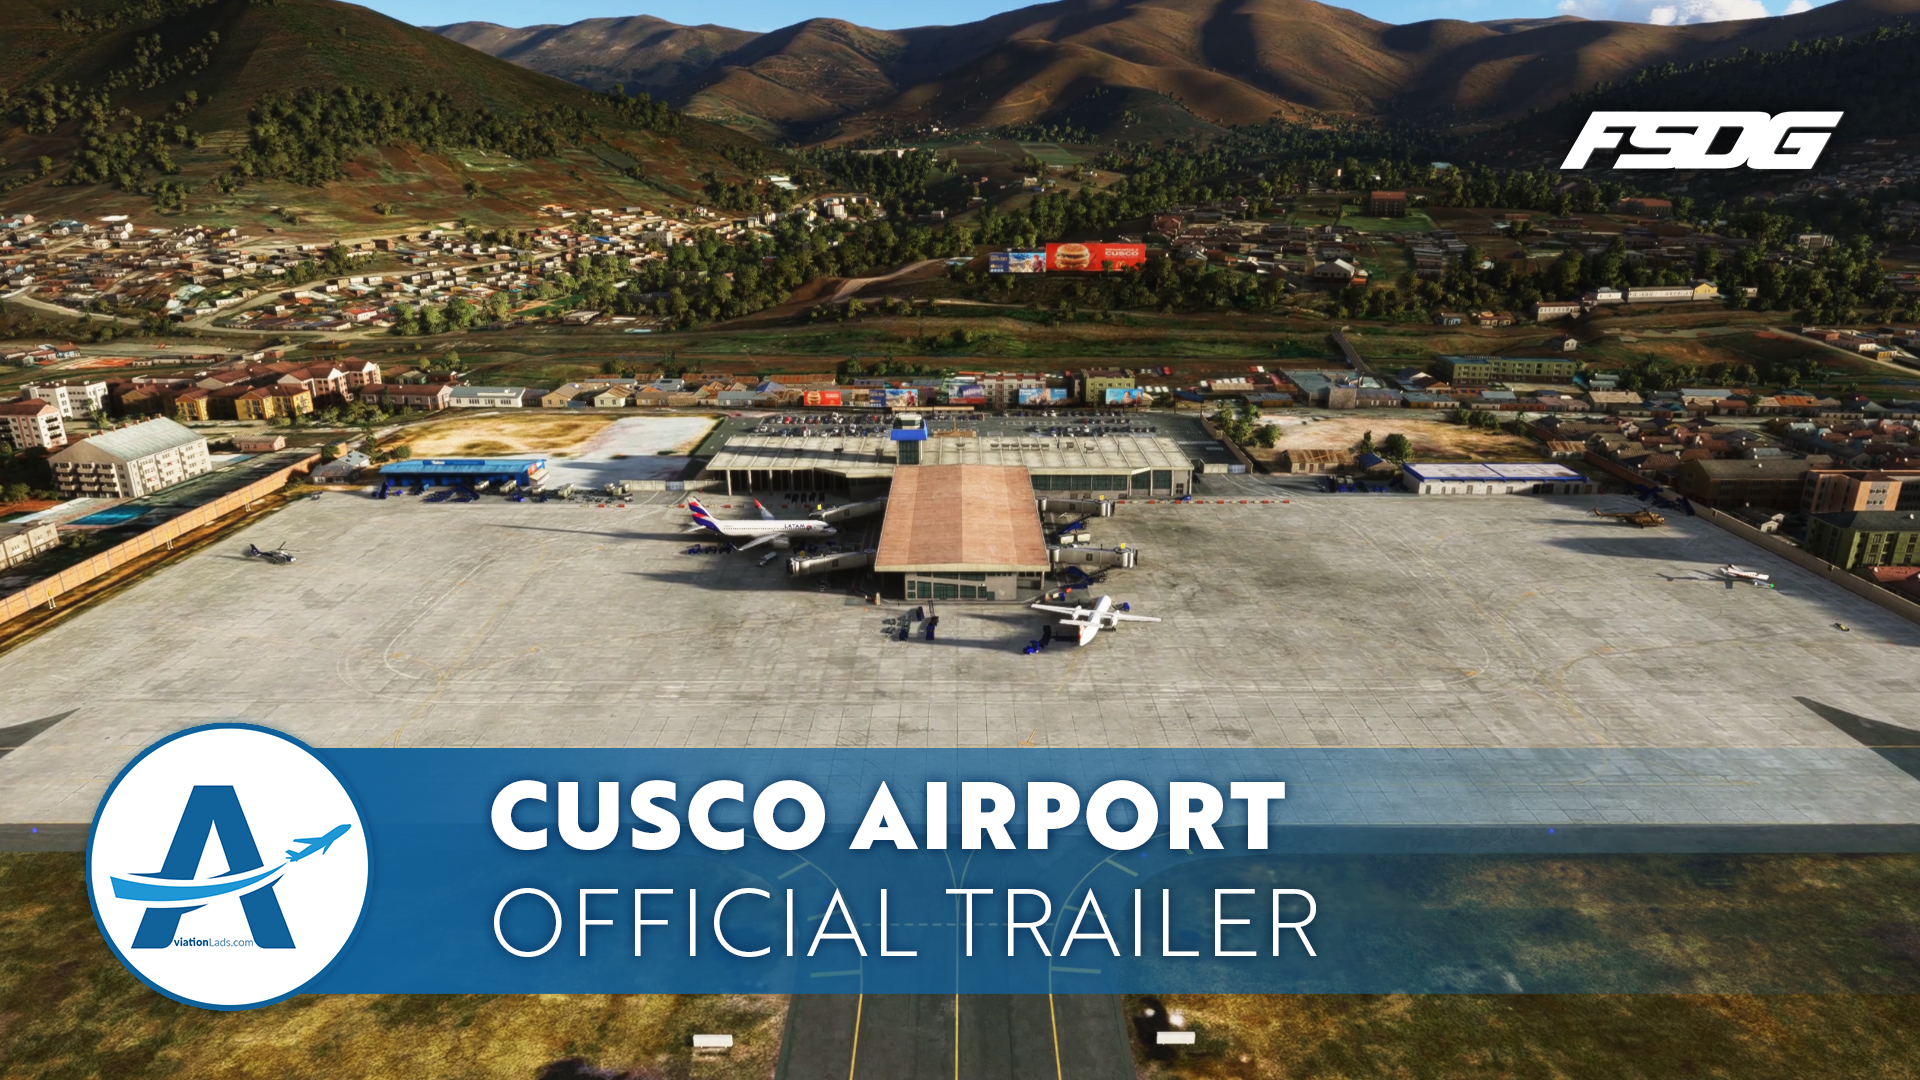 [TRAILER] FSDG – Cusco Airport